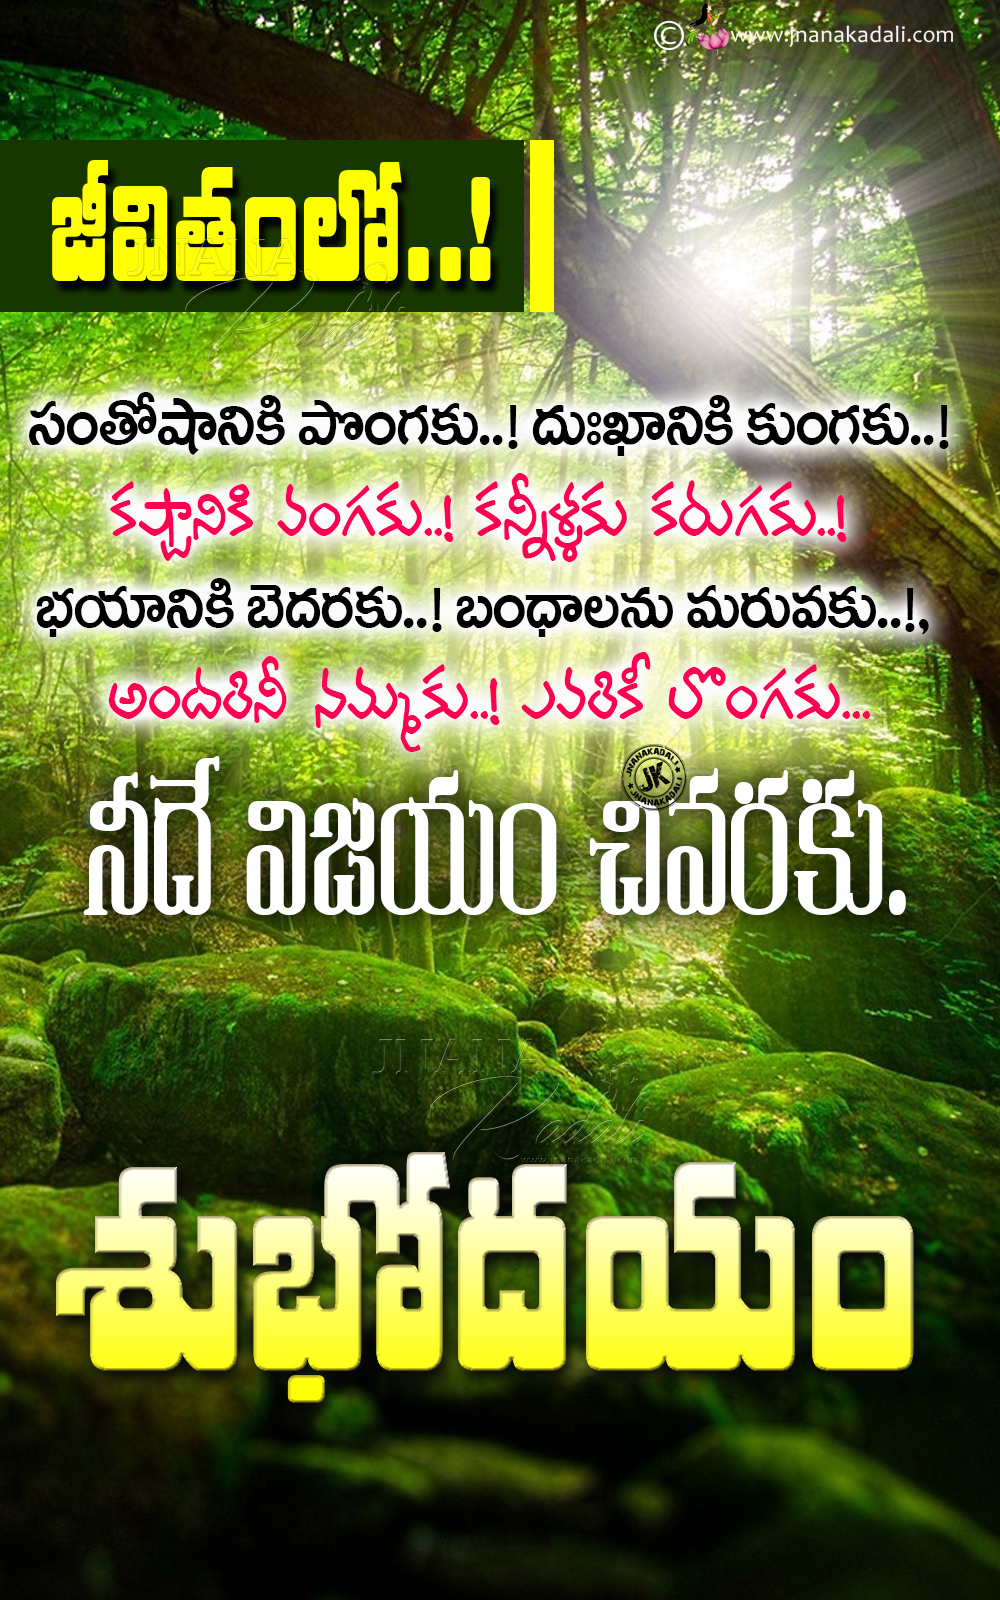 Subhodayam Telugu Motivational Quotes Hd Wallpapers Best Words On